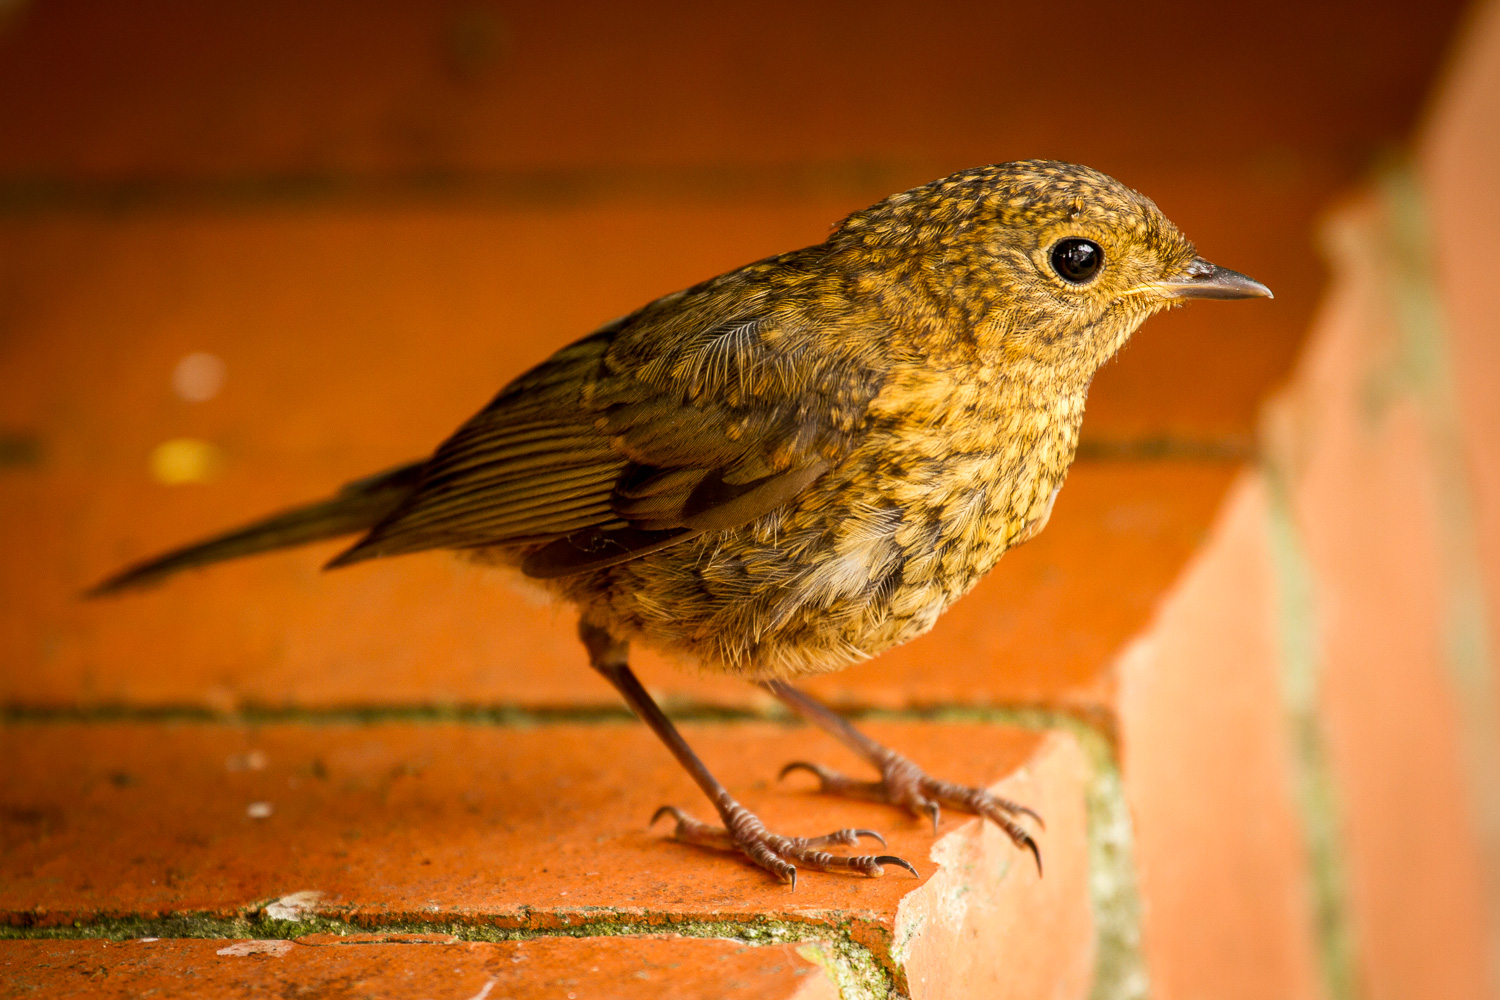 A Close-up Photograph Of A Garden Bird Perched On A Brick Wall And Looking At The Camera, Taking In Gloucestershire, England.